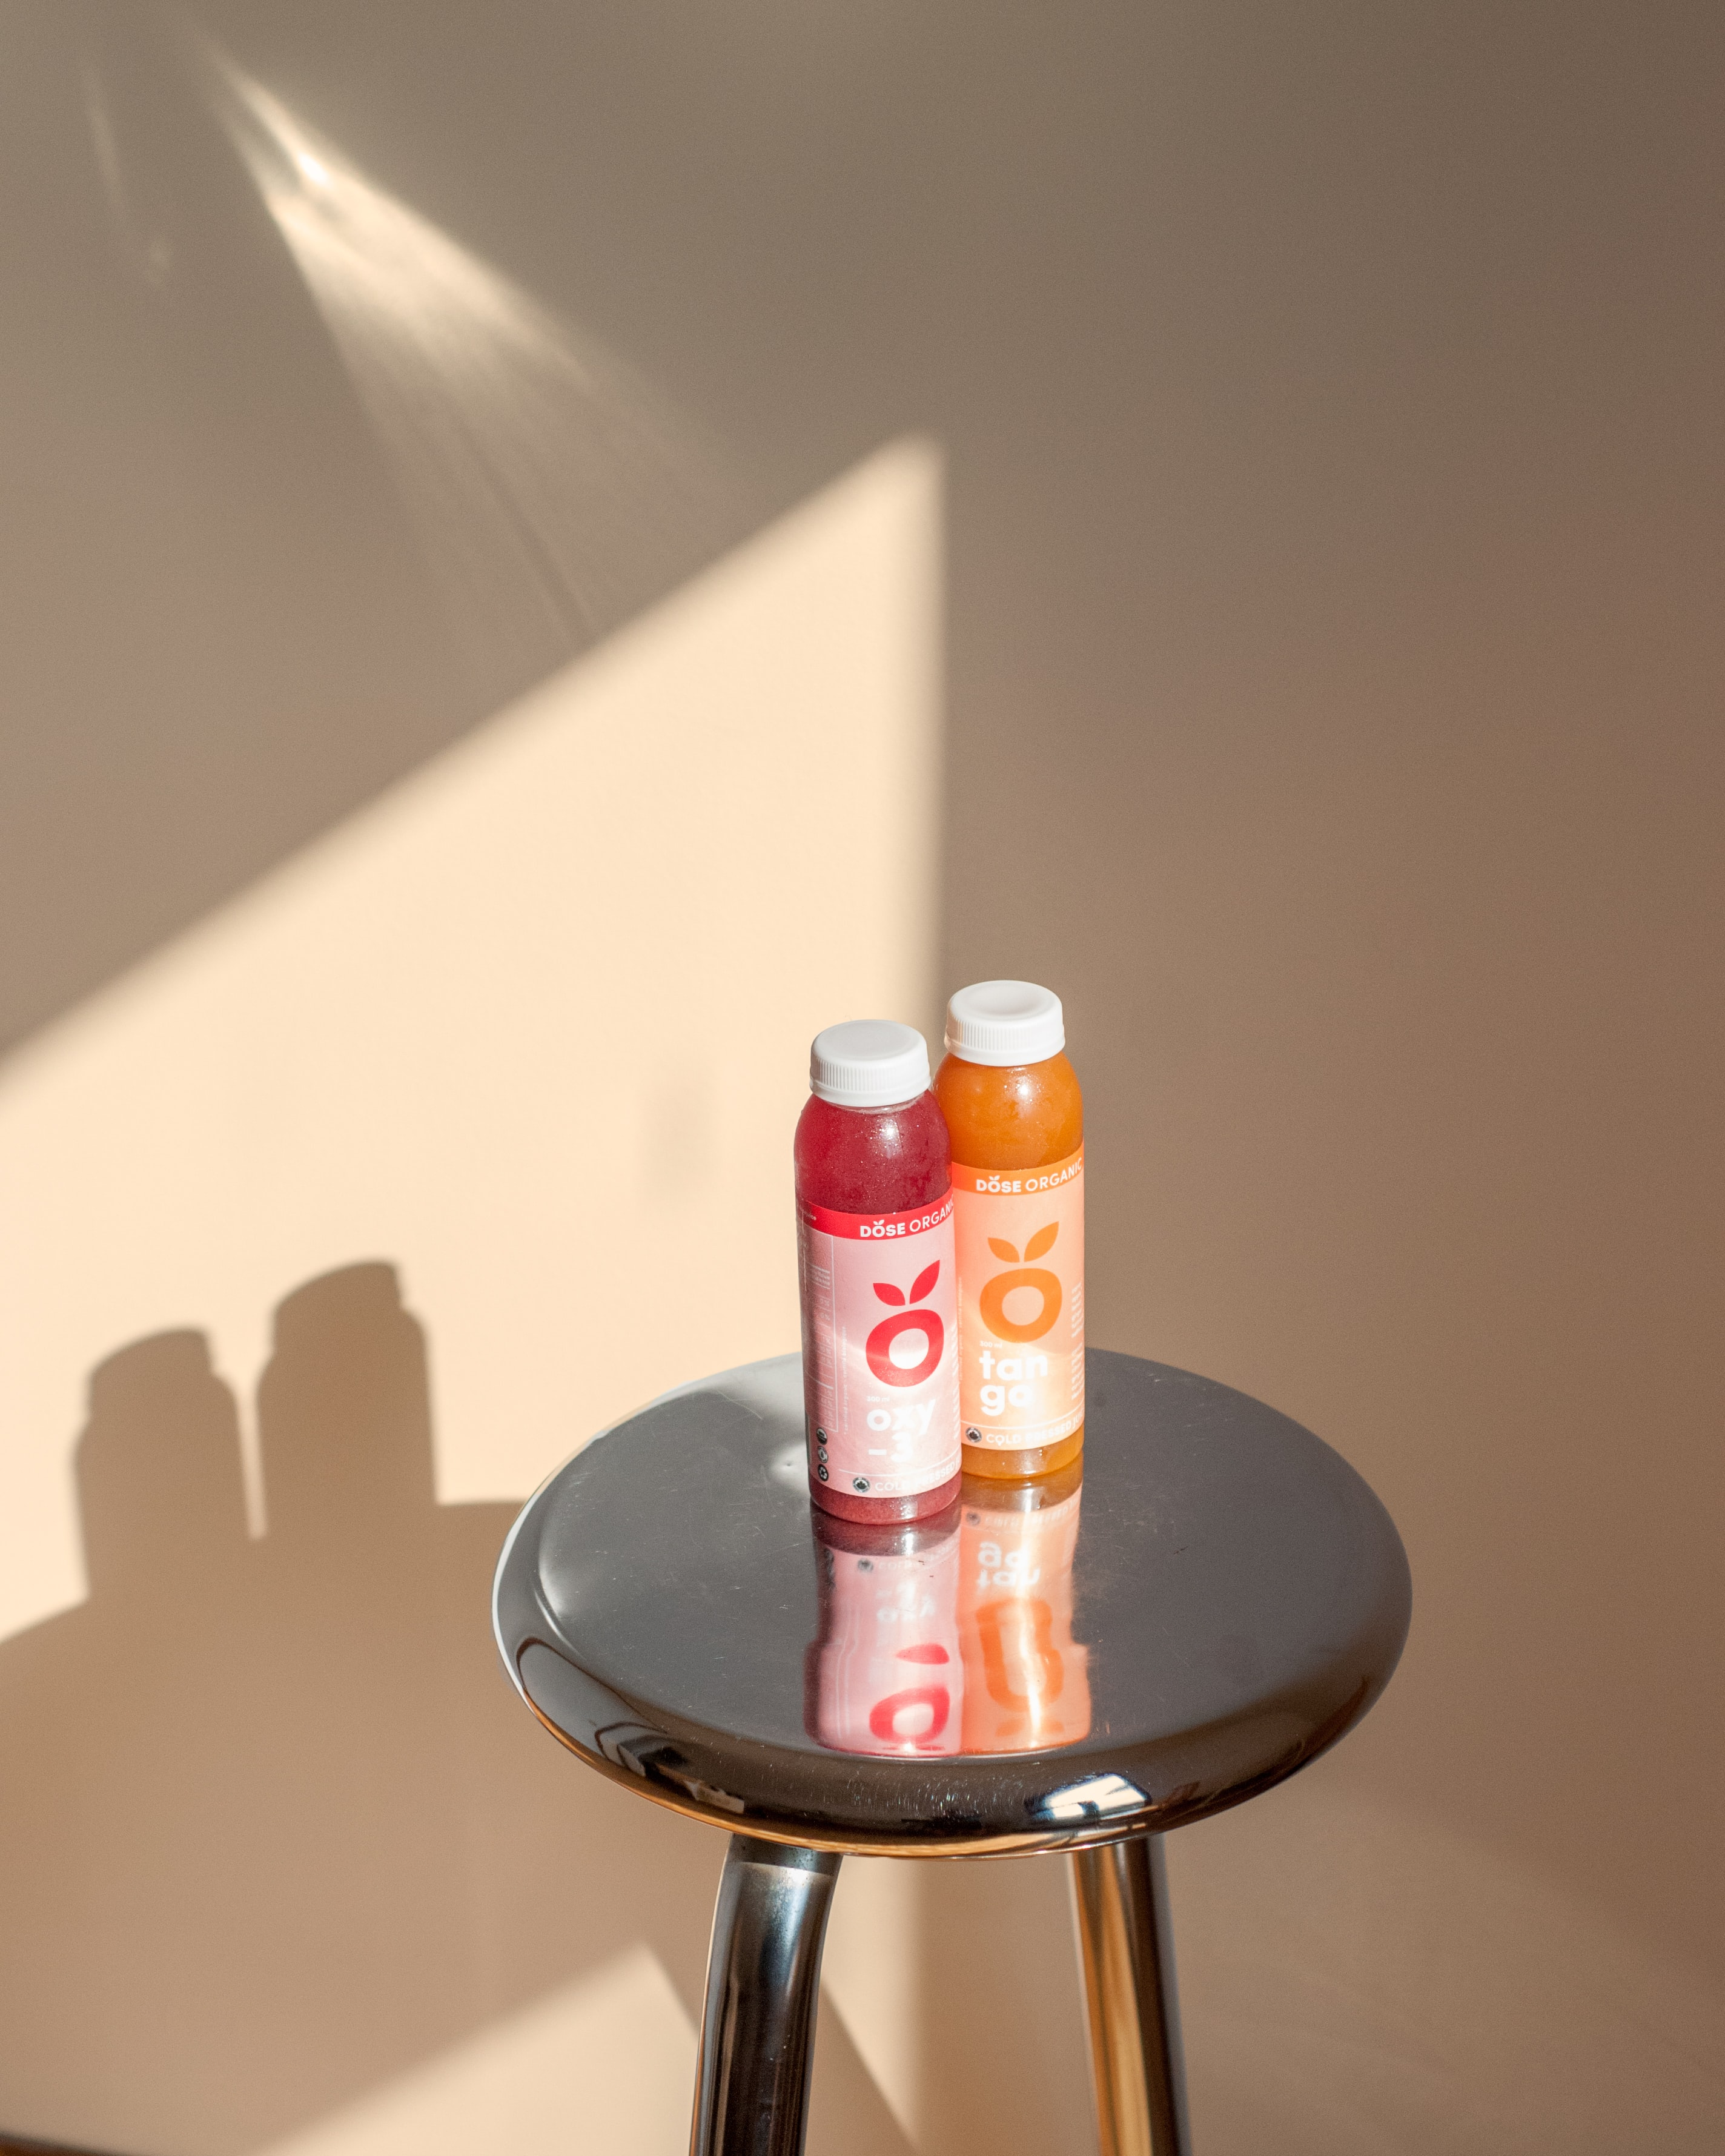 two smoothie bottles on stool